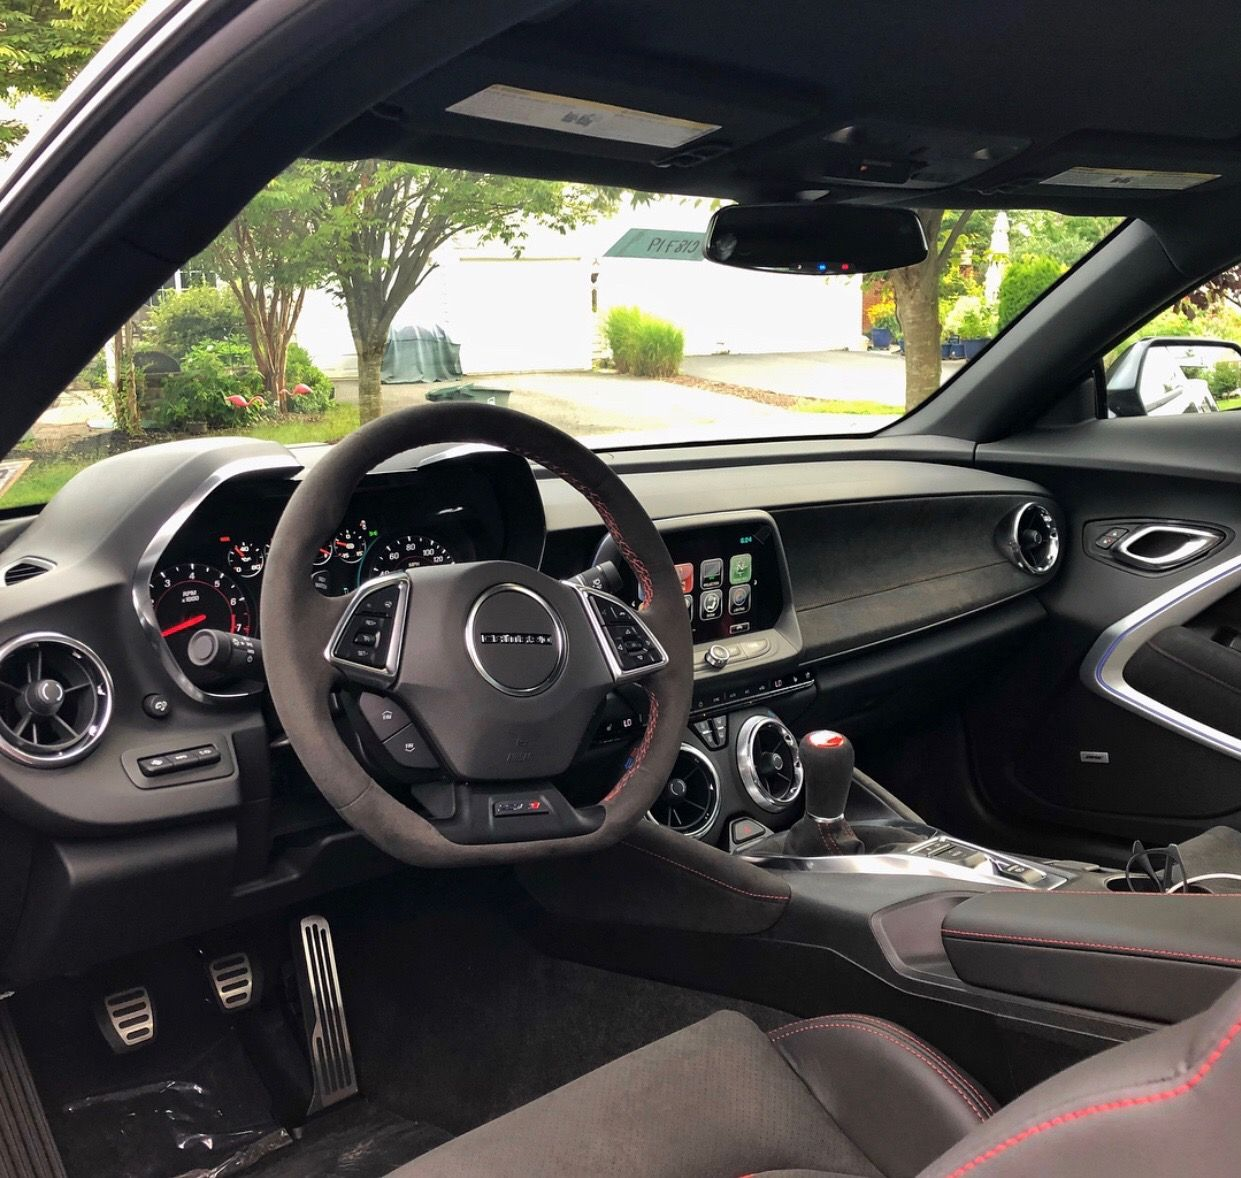 Interior Of The Chevrolet Camaro Zl1 1le Painted In Nightfall Grey Metallic Photo Taken By Cam Cohen On Instagram Owned By Cam Cohen On Instagram